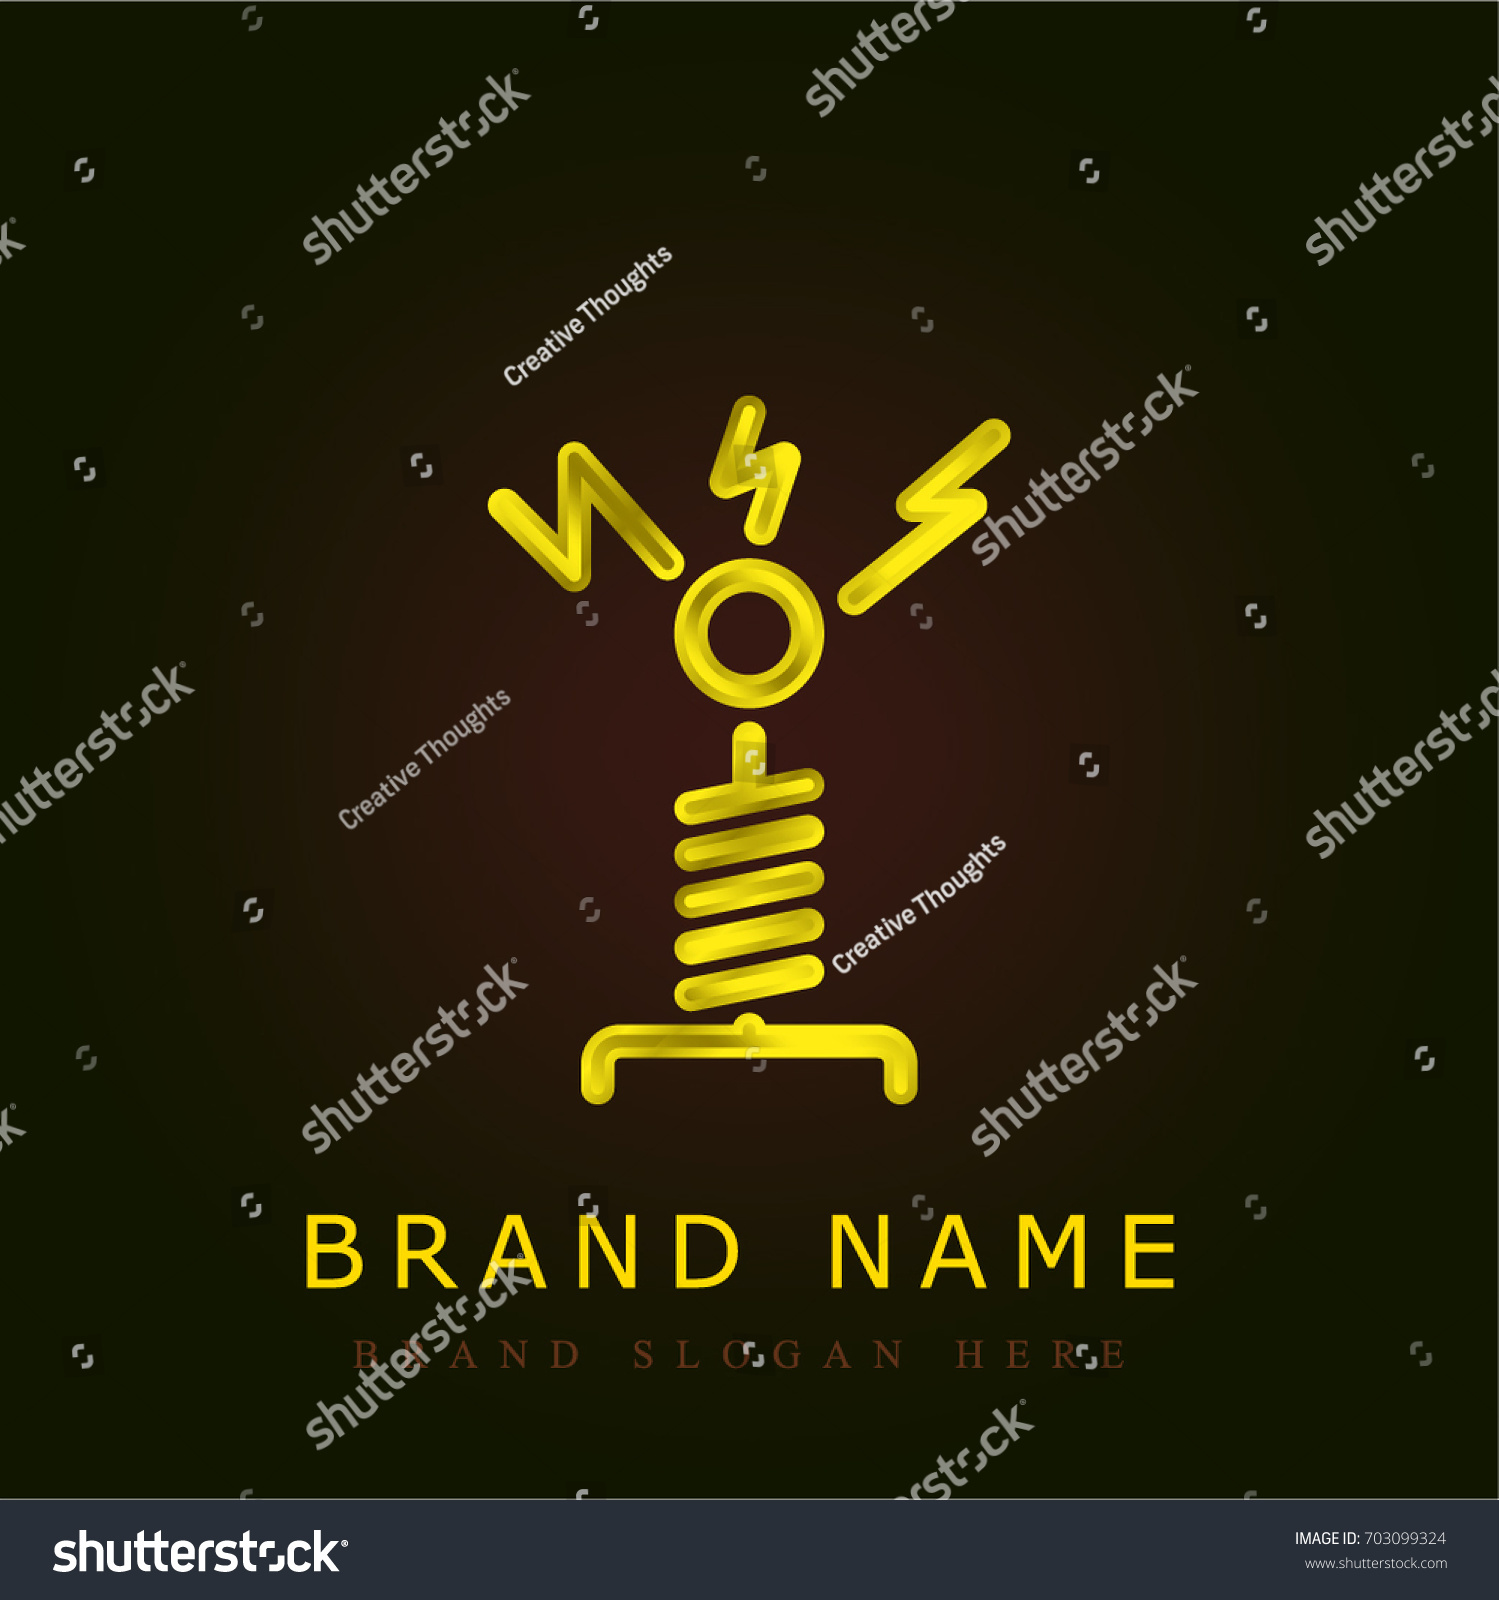 Tesla coil golden metallic logo stock vector 703099324 shutterstock tesla coil golden metallic logo buycottarizona Gallery